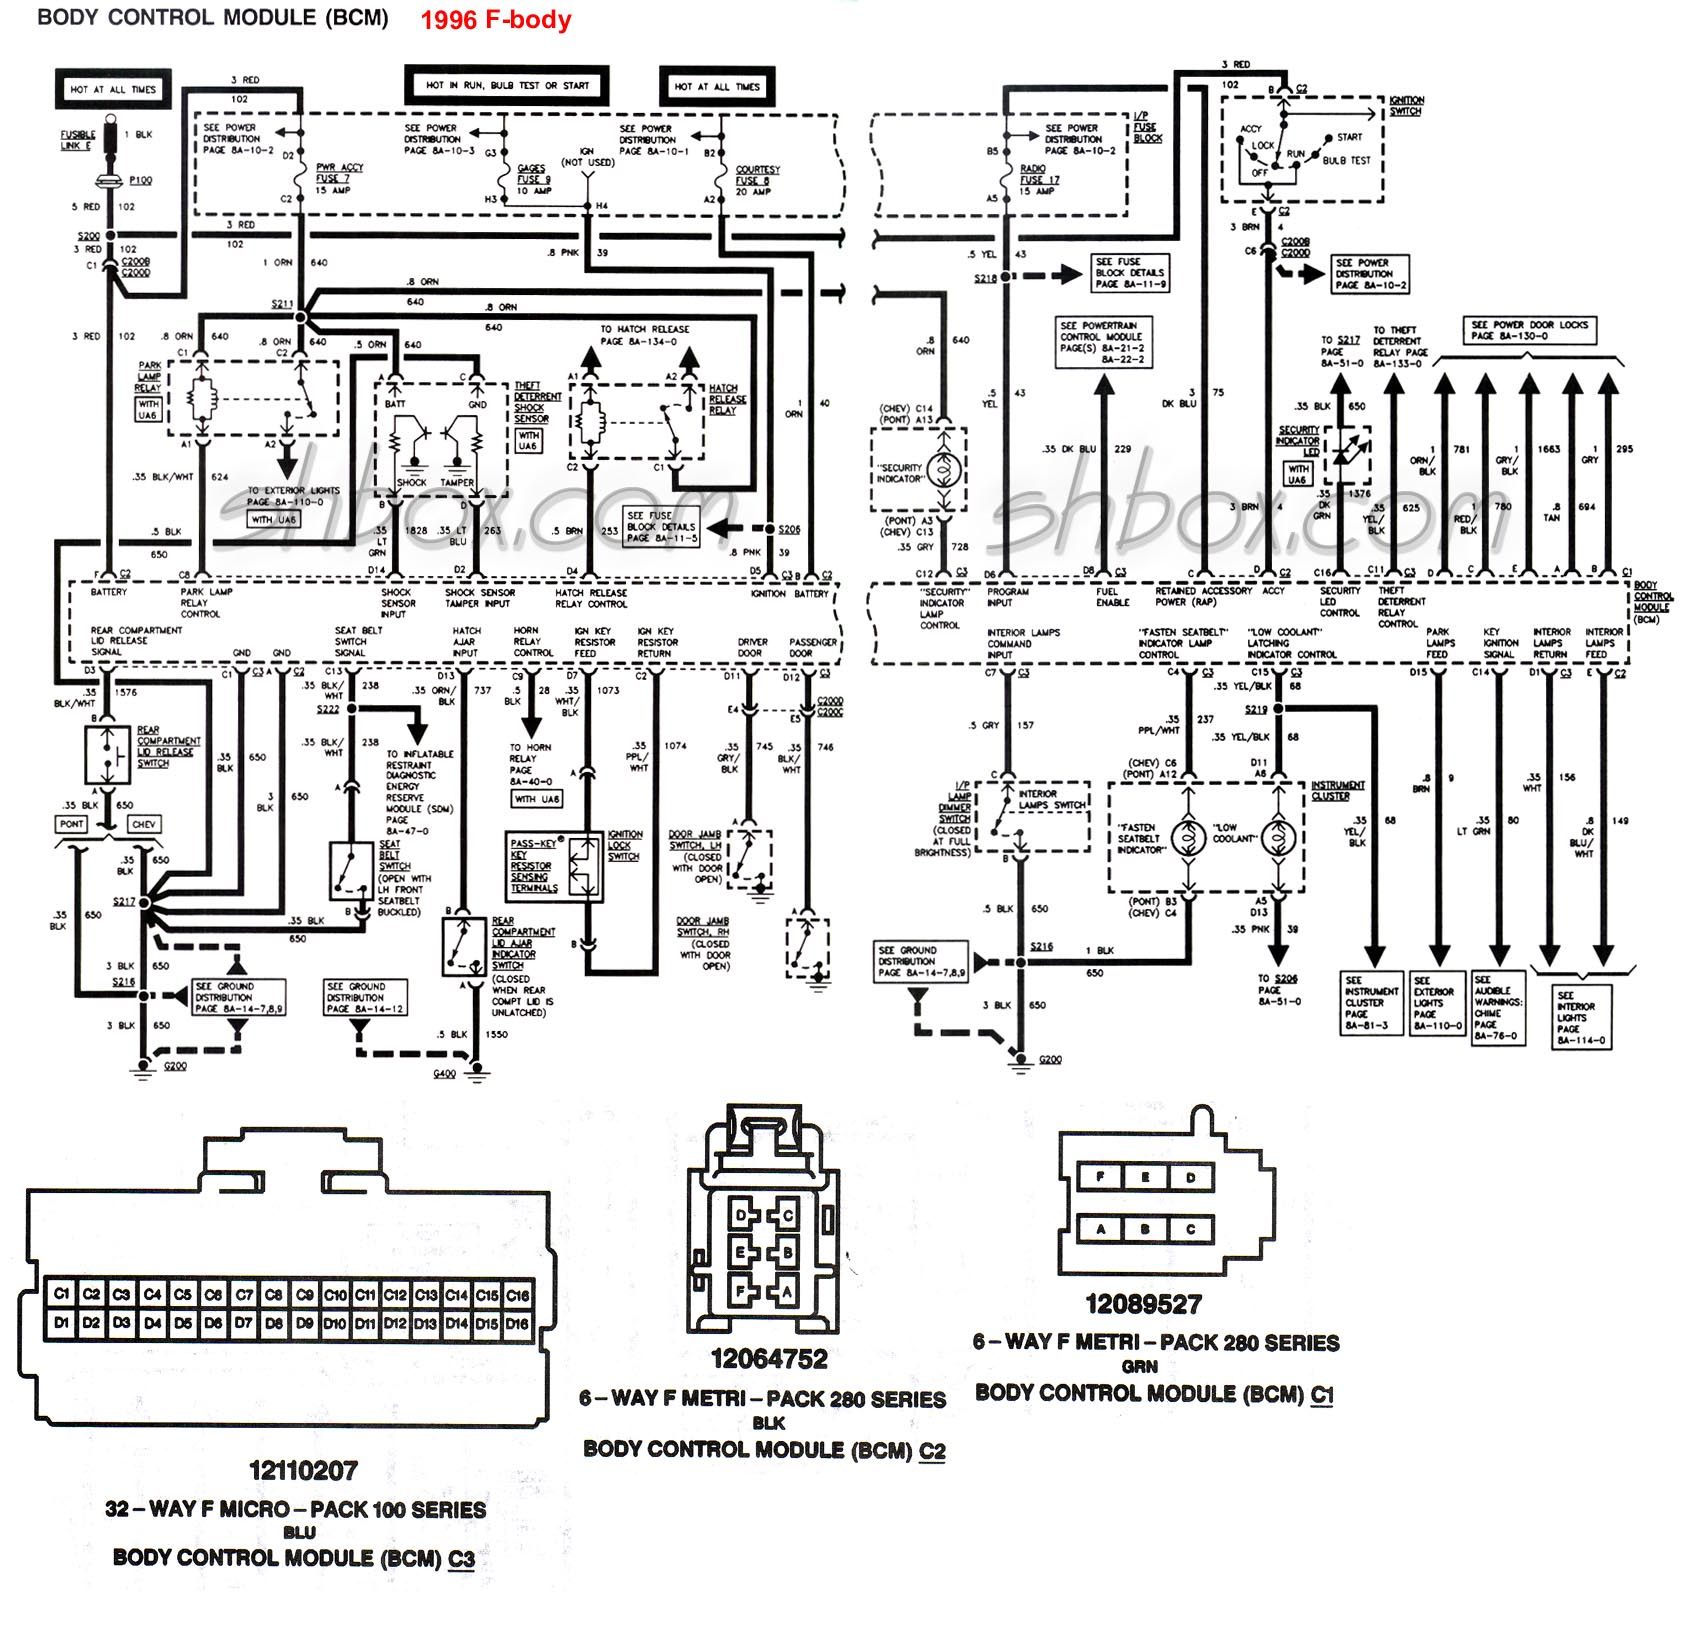 Chevy Colorado Bcm Wiring Diagram on 1997 chevy tahoe engine diagram